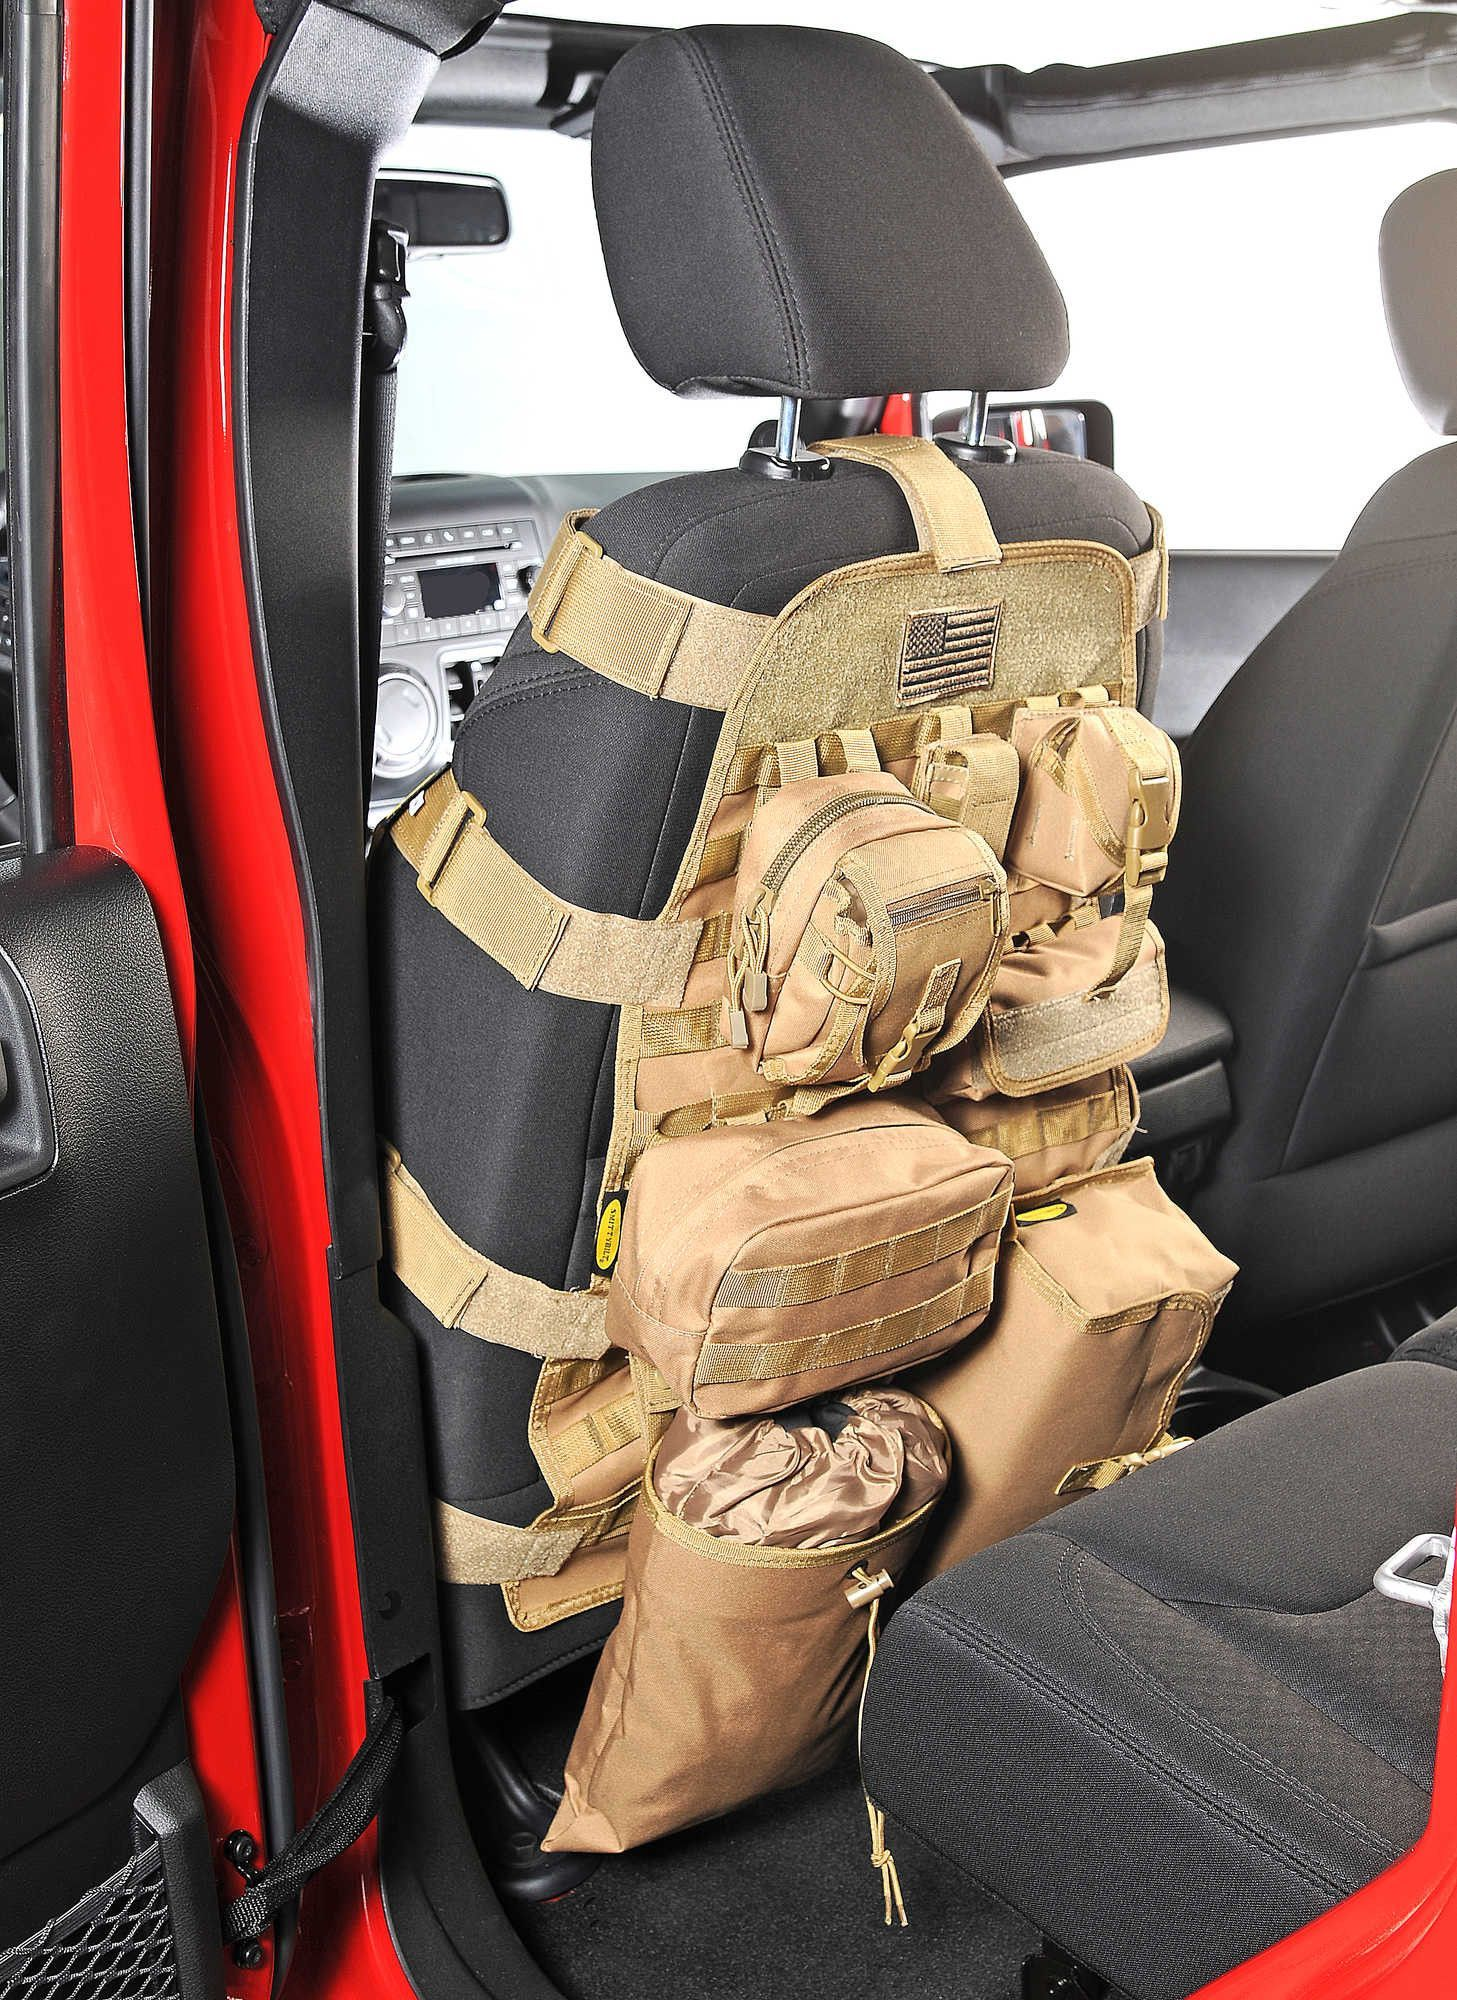 2cf0b87fb0db978b6b081ffa76589e9b Take A Look About Jeep Dog Accessories with Captivating Gallery Cars Review